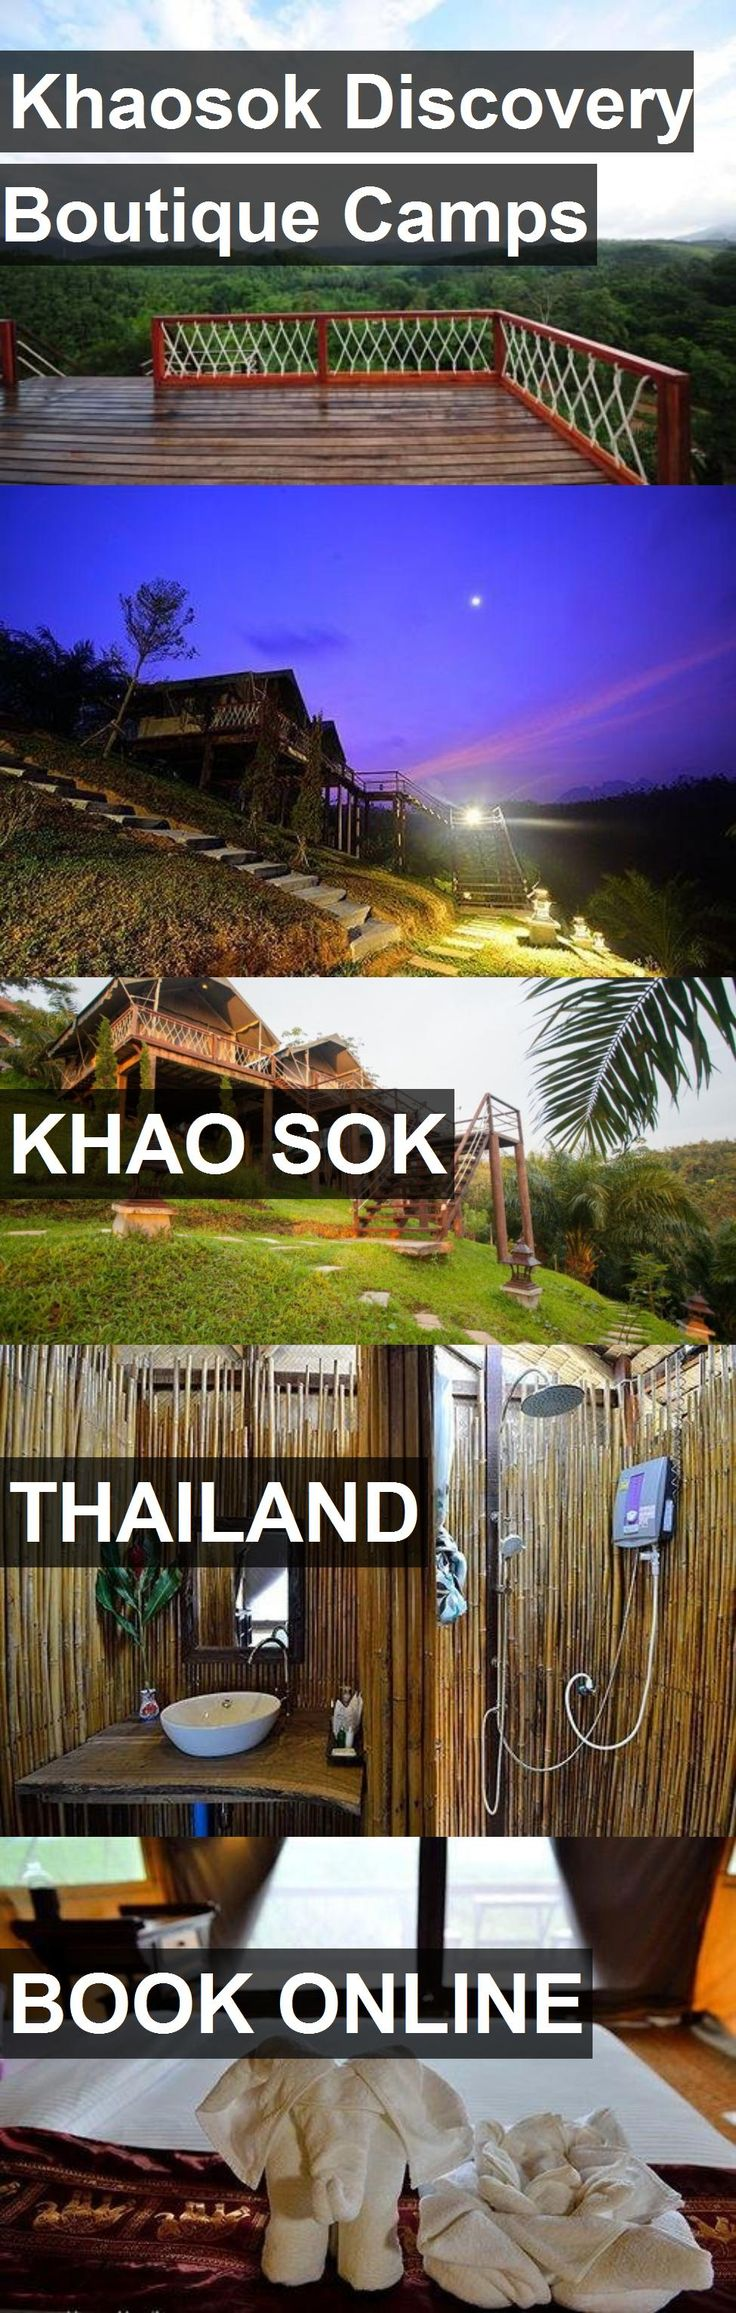 Hotel Khaosok Discovery Boutique Camps in Khao Sok, Thailand. For more information, photos, reviews and best prices please follow the link. #Thailand #KhaoSok #KhaosokDiscoveryBoutiqueCamps #hotel #travel #vacation